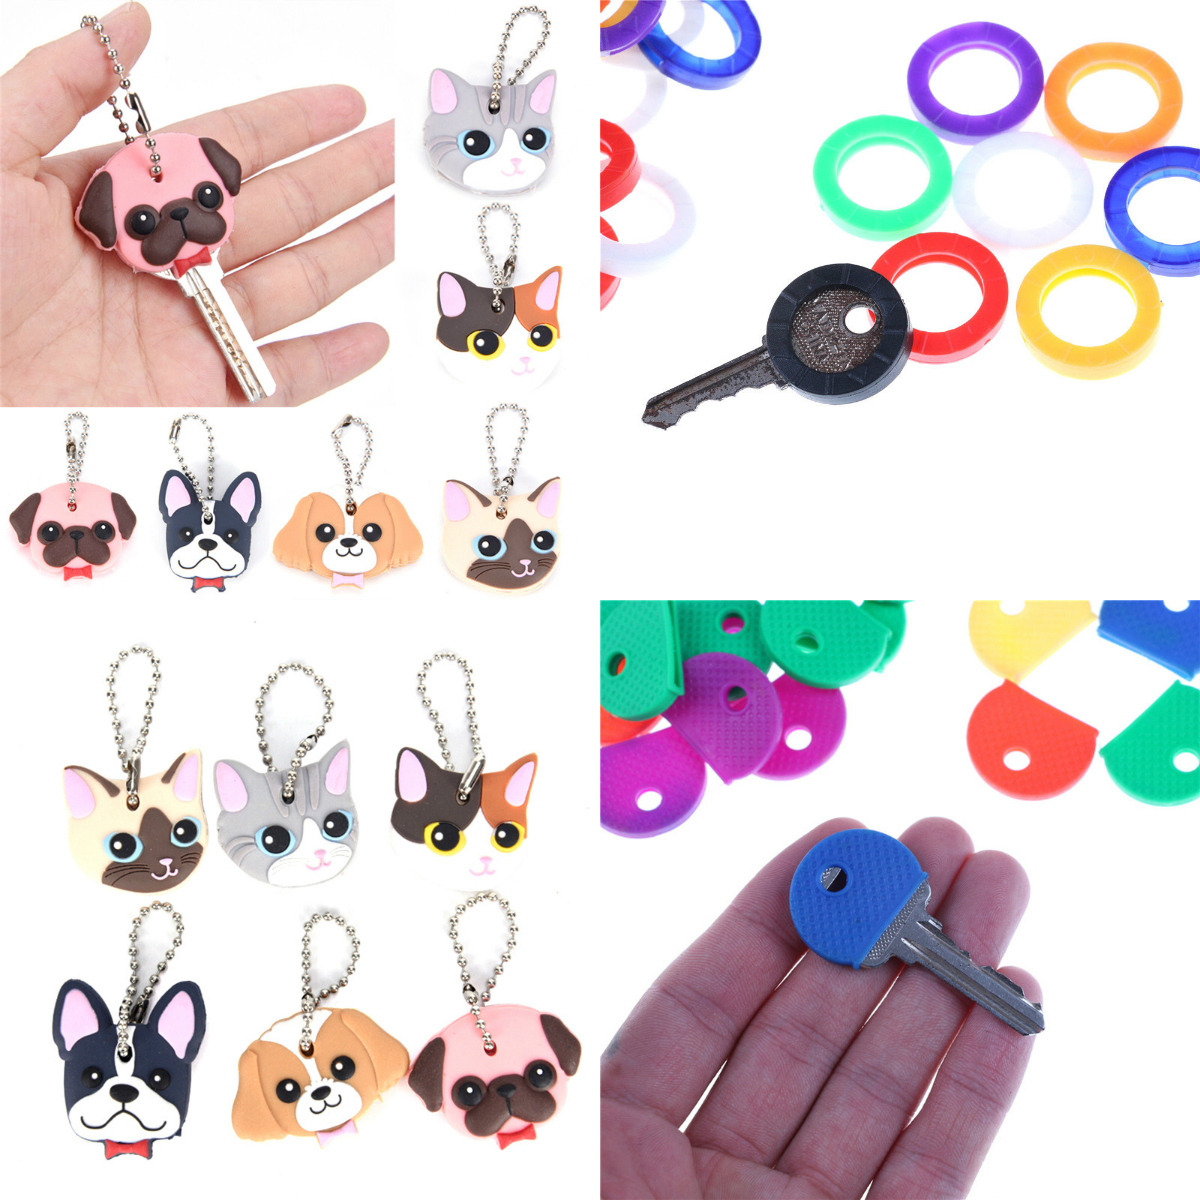 1 Pc Silicone Key Ring Cap Head Cover Keychain Case Chaveiro Bag Charm Key Chain Pendant Girl Women Gift Jewelry Llaveros